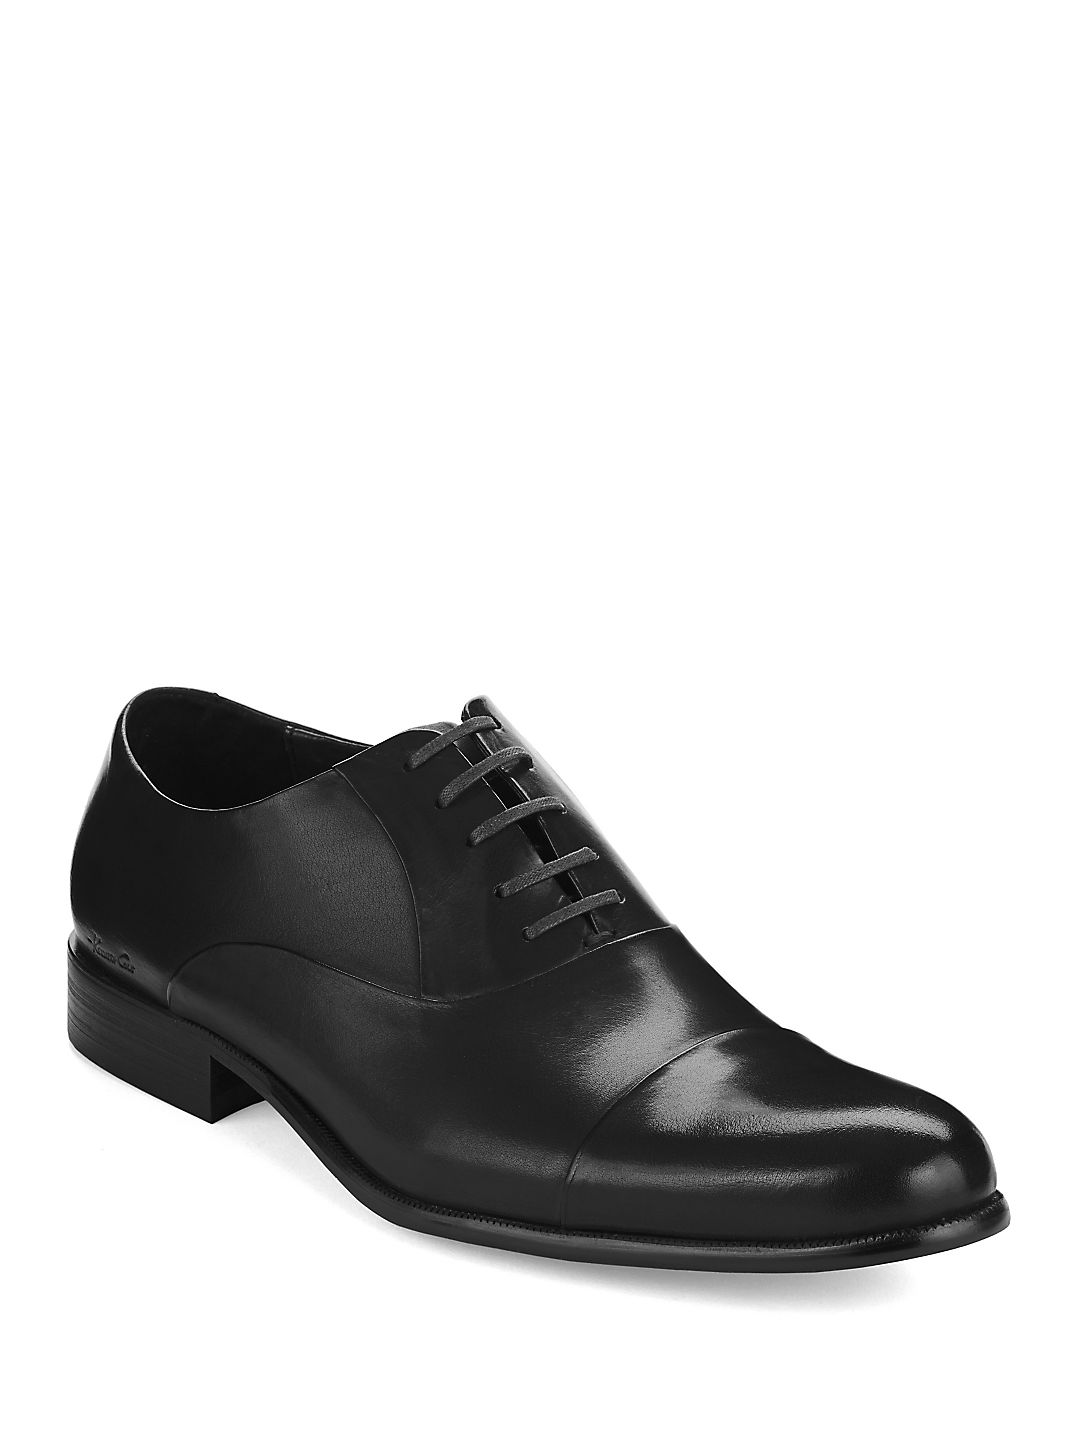 Chief Council Leather Cap-Toe Oxfords